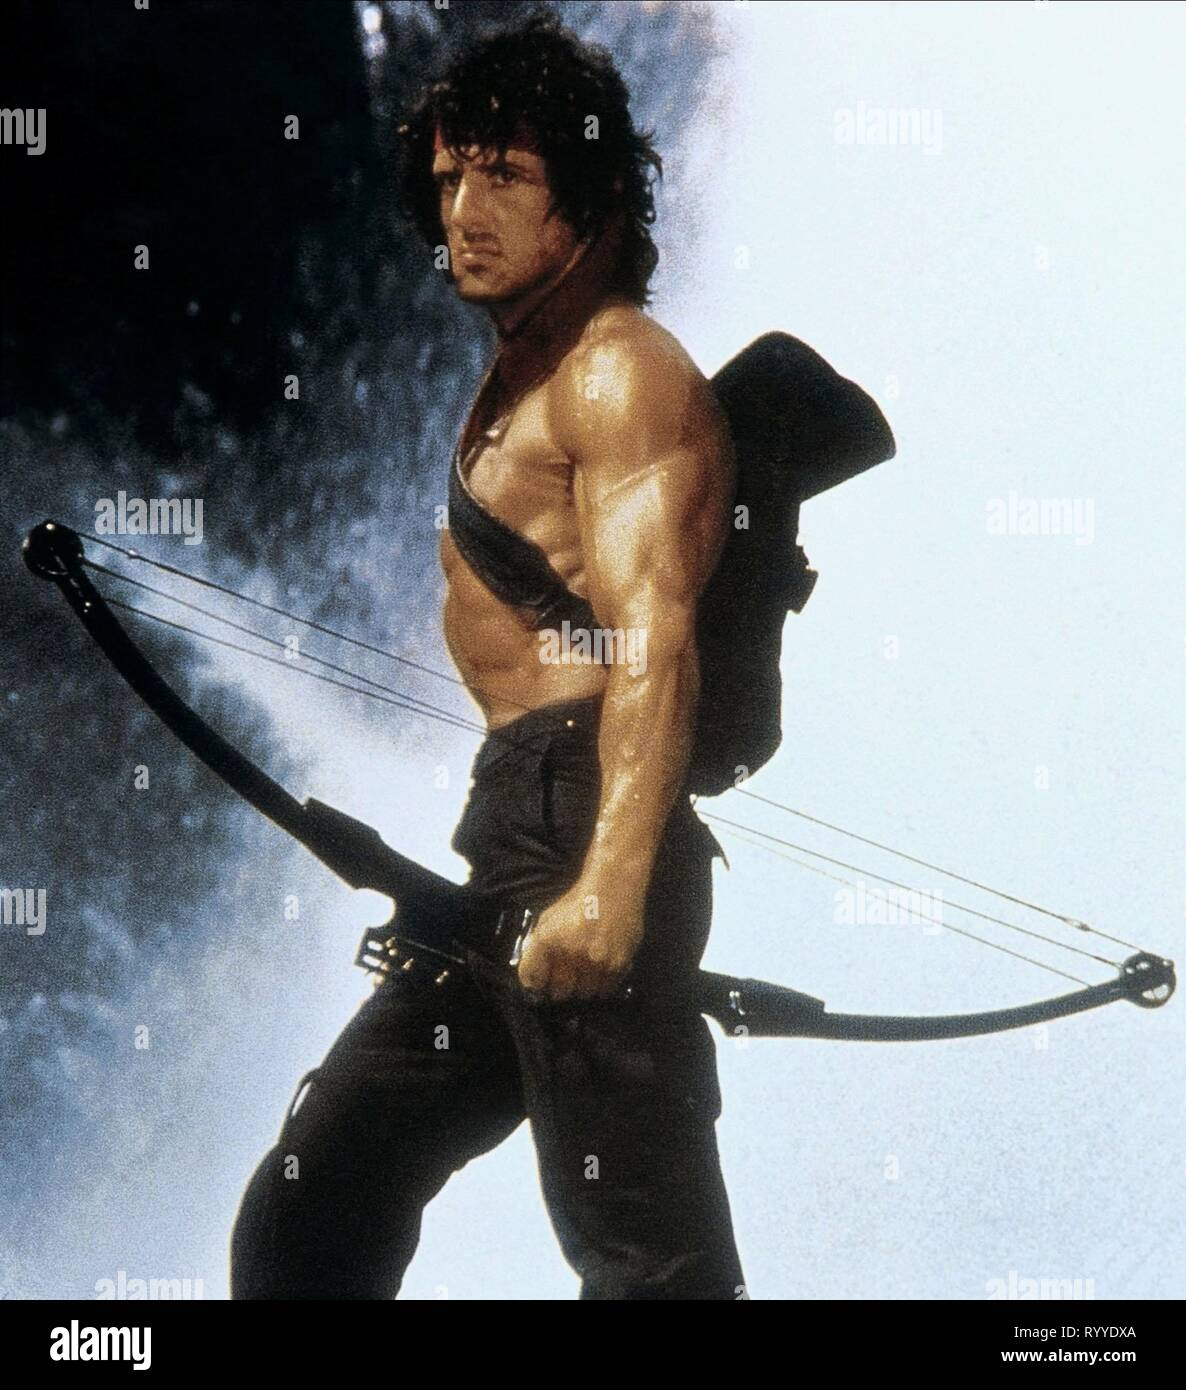 SYLVESTER STALLONE, RAMBO: FIRST BLOOD PART II, 1985 - Stock Image